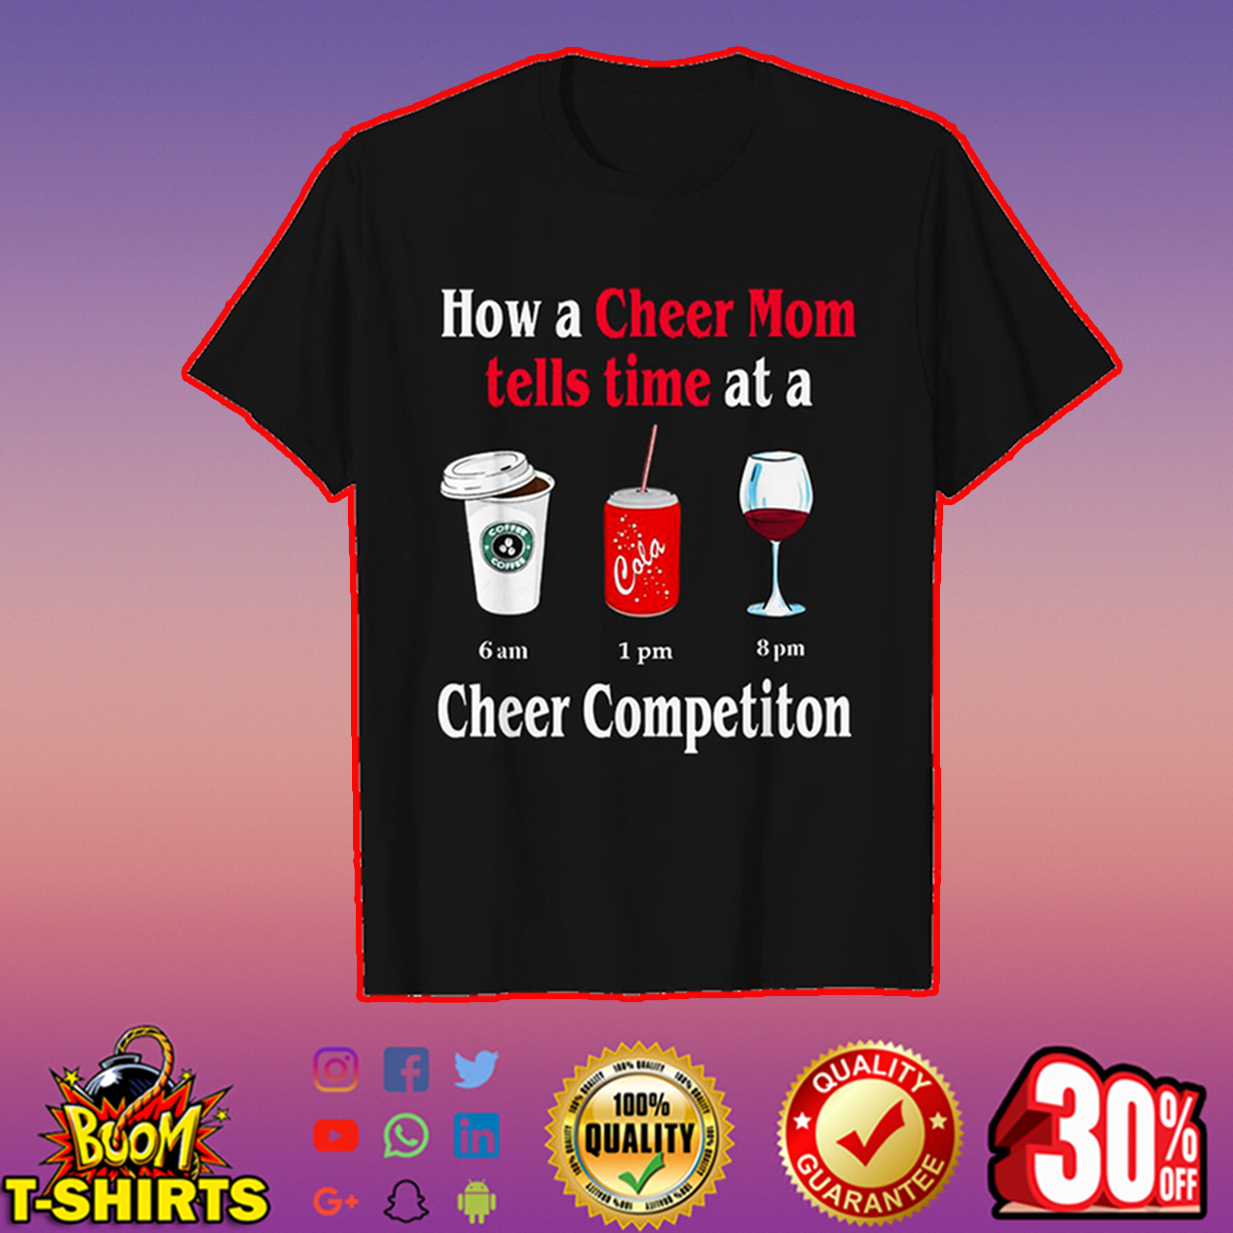 How a cheer mom tells time at a coffee 6 am cola 1 pm wine 8 pm cheer competiton shirt